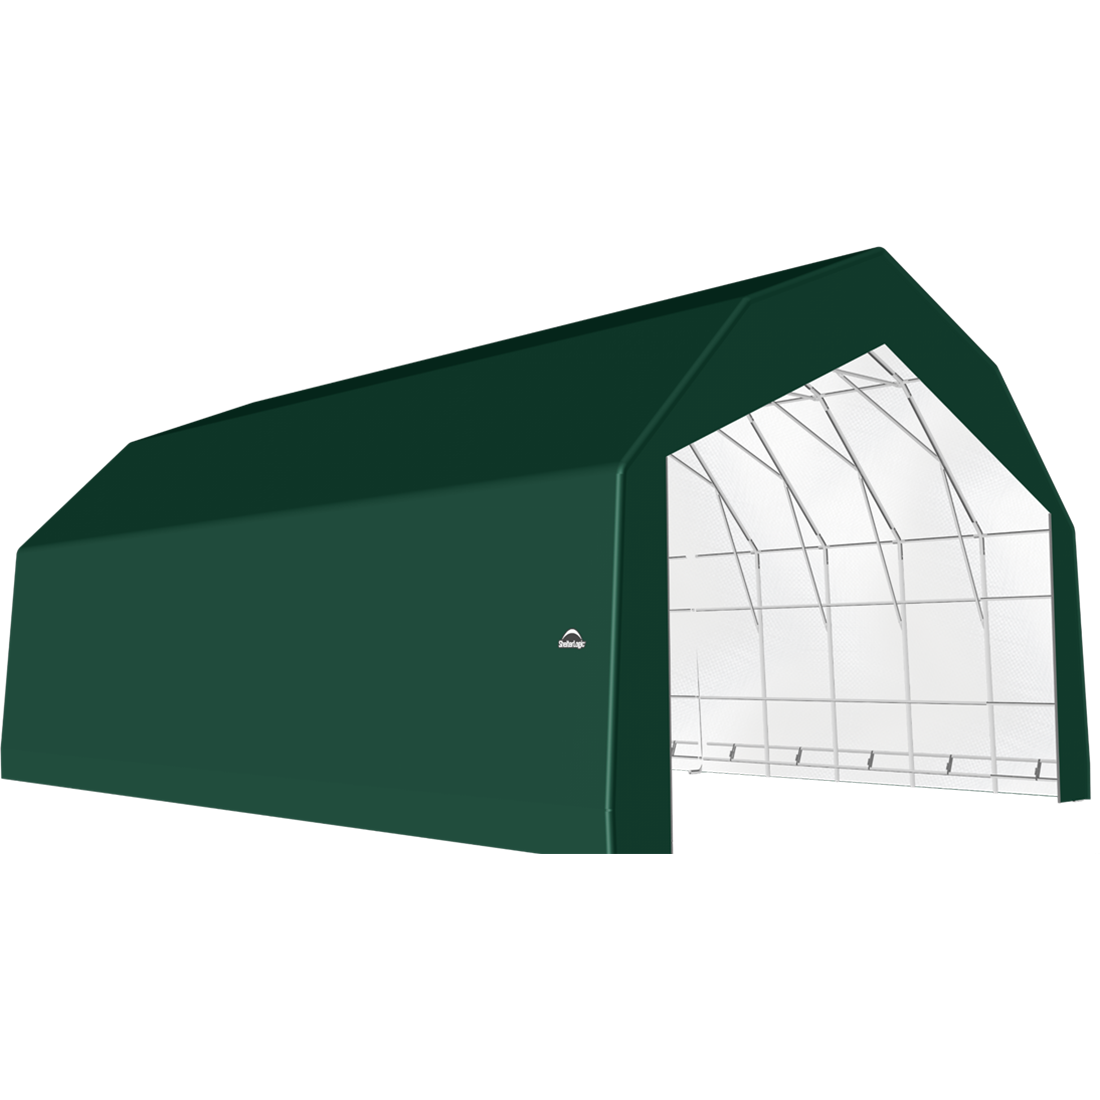 SP Barn 30X44X21 Green 14 oz PE Shelter